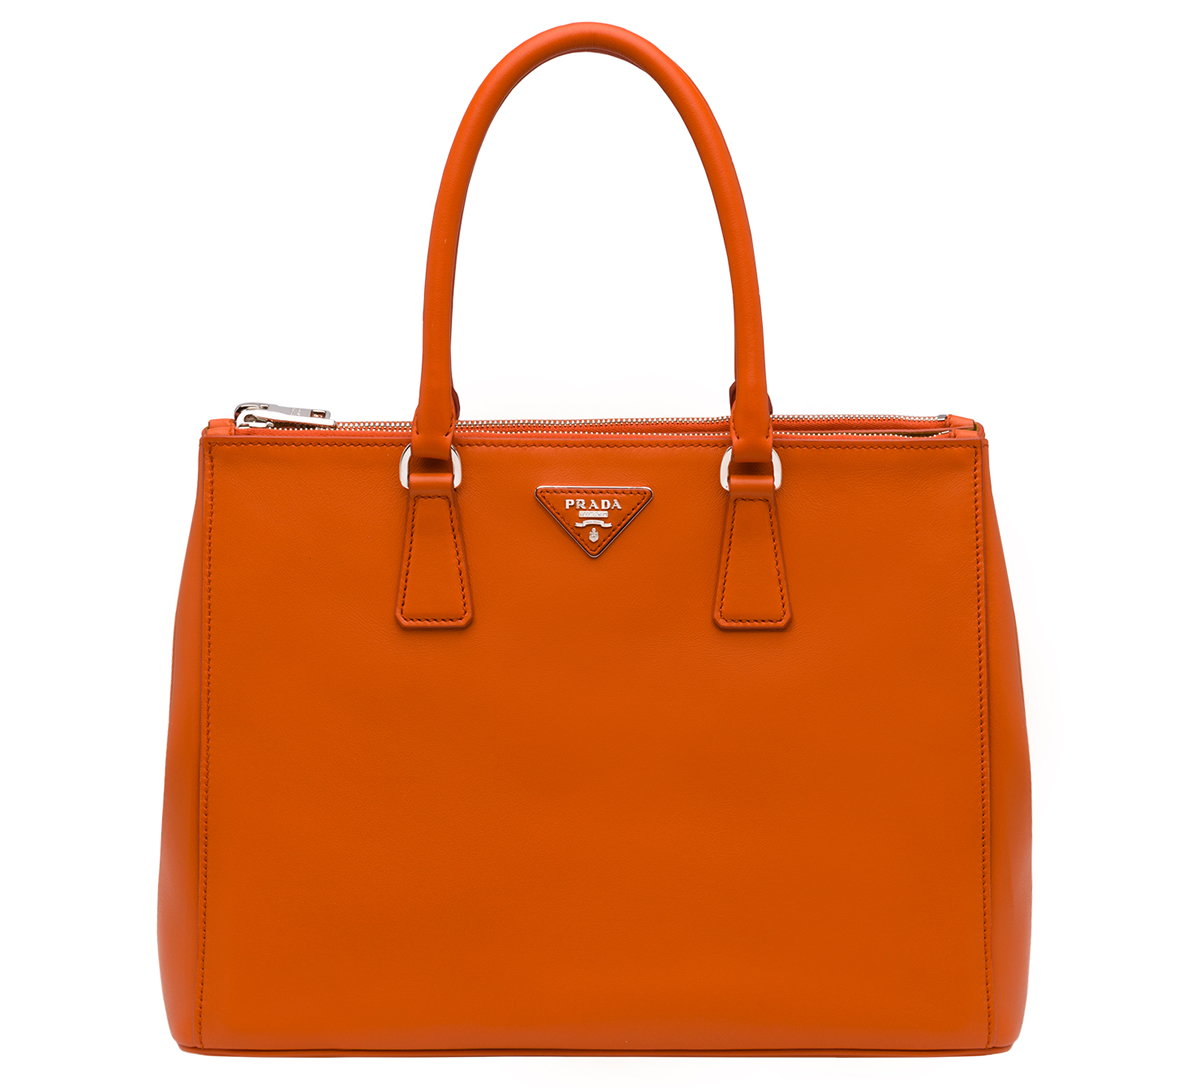 Prada Galleria Bag in Papaya